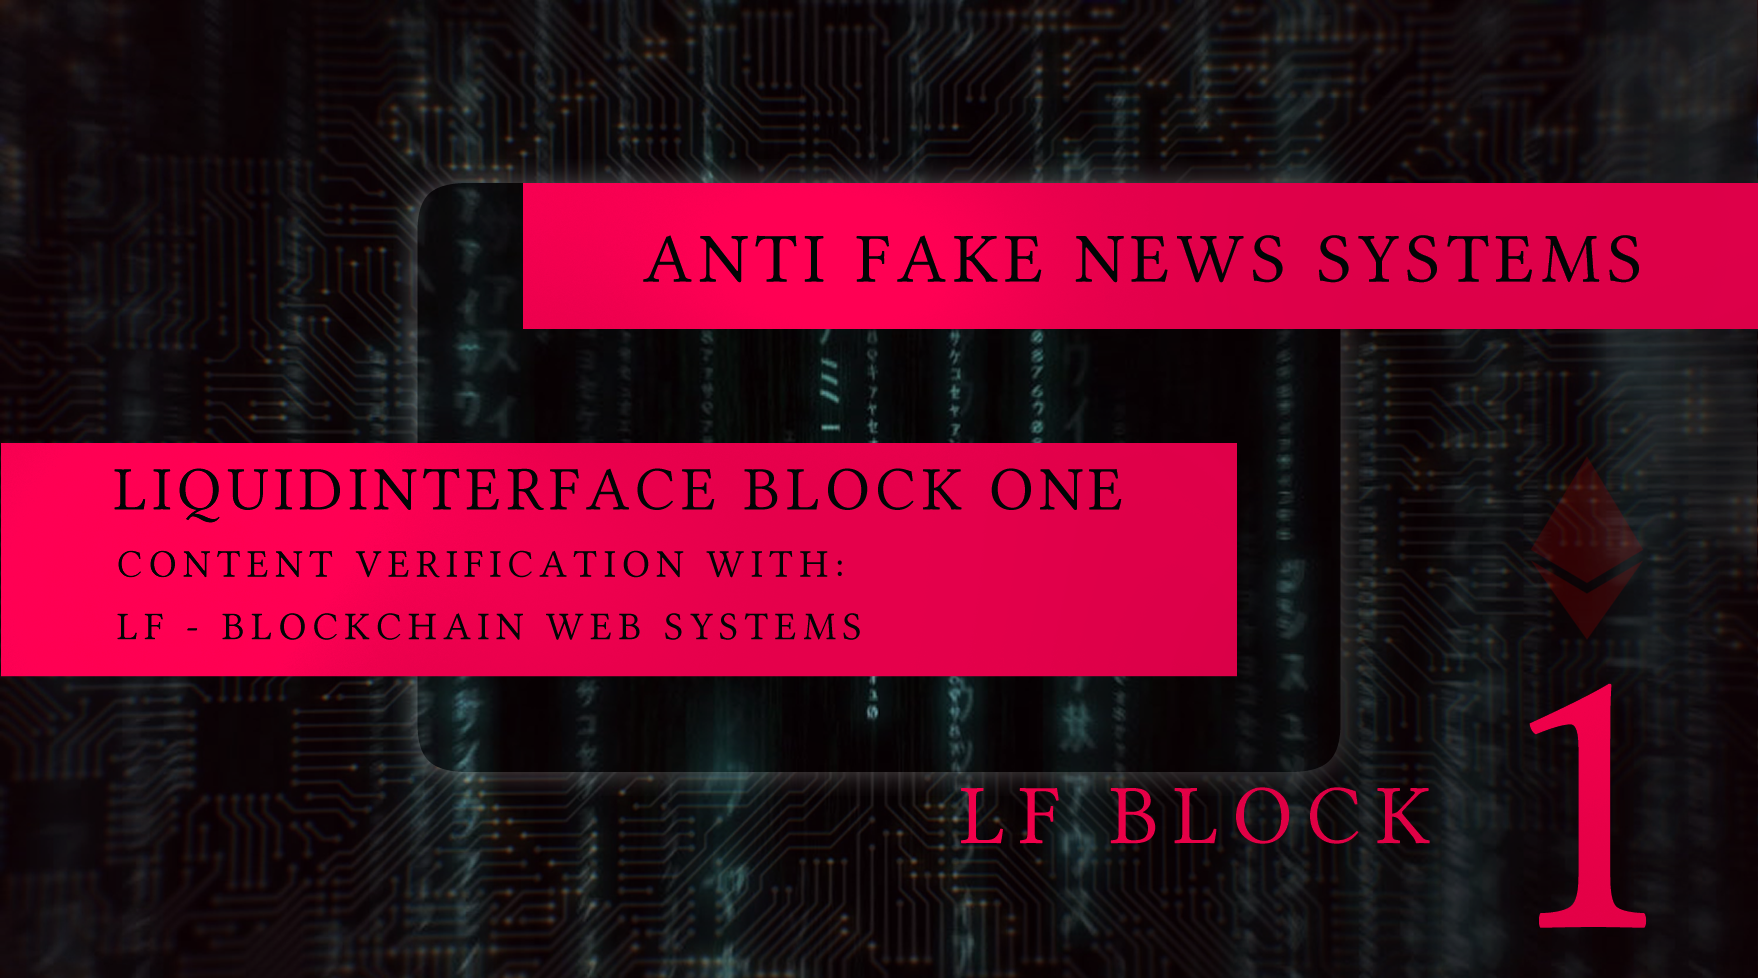 cyber_verification_blockone_s